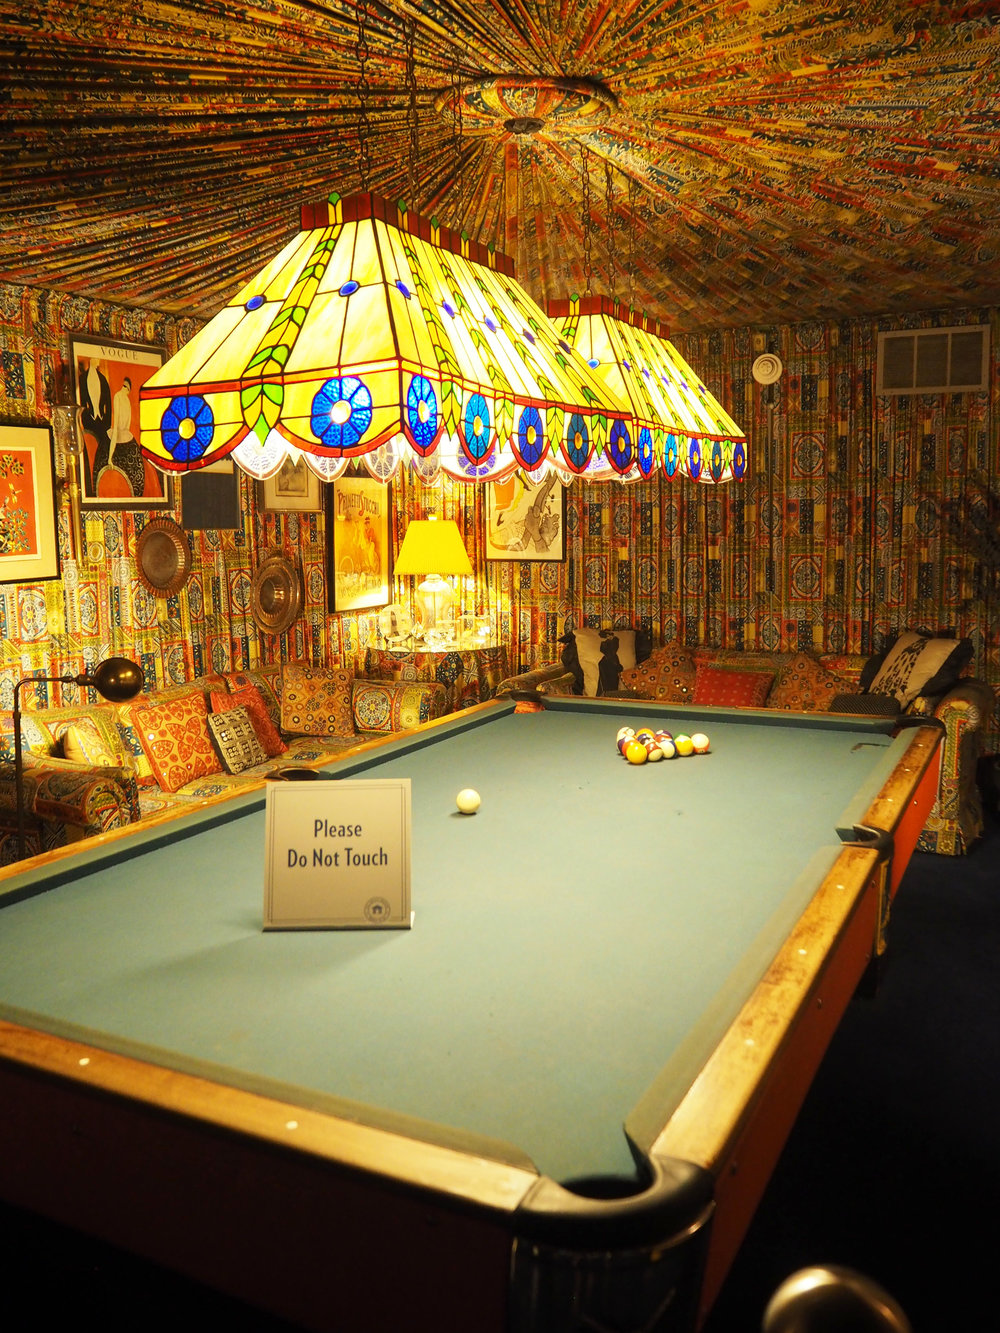 Elvis Presley | Graceland. The billiard Room. Designer Bill Eubanks helped design the pool room at Graceland.